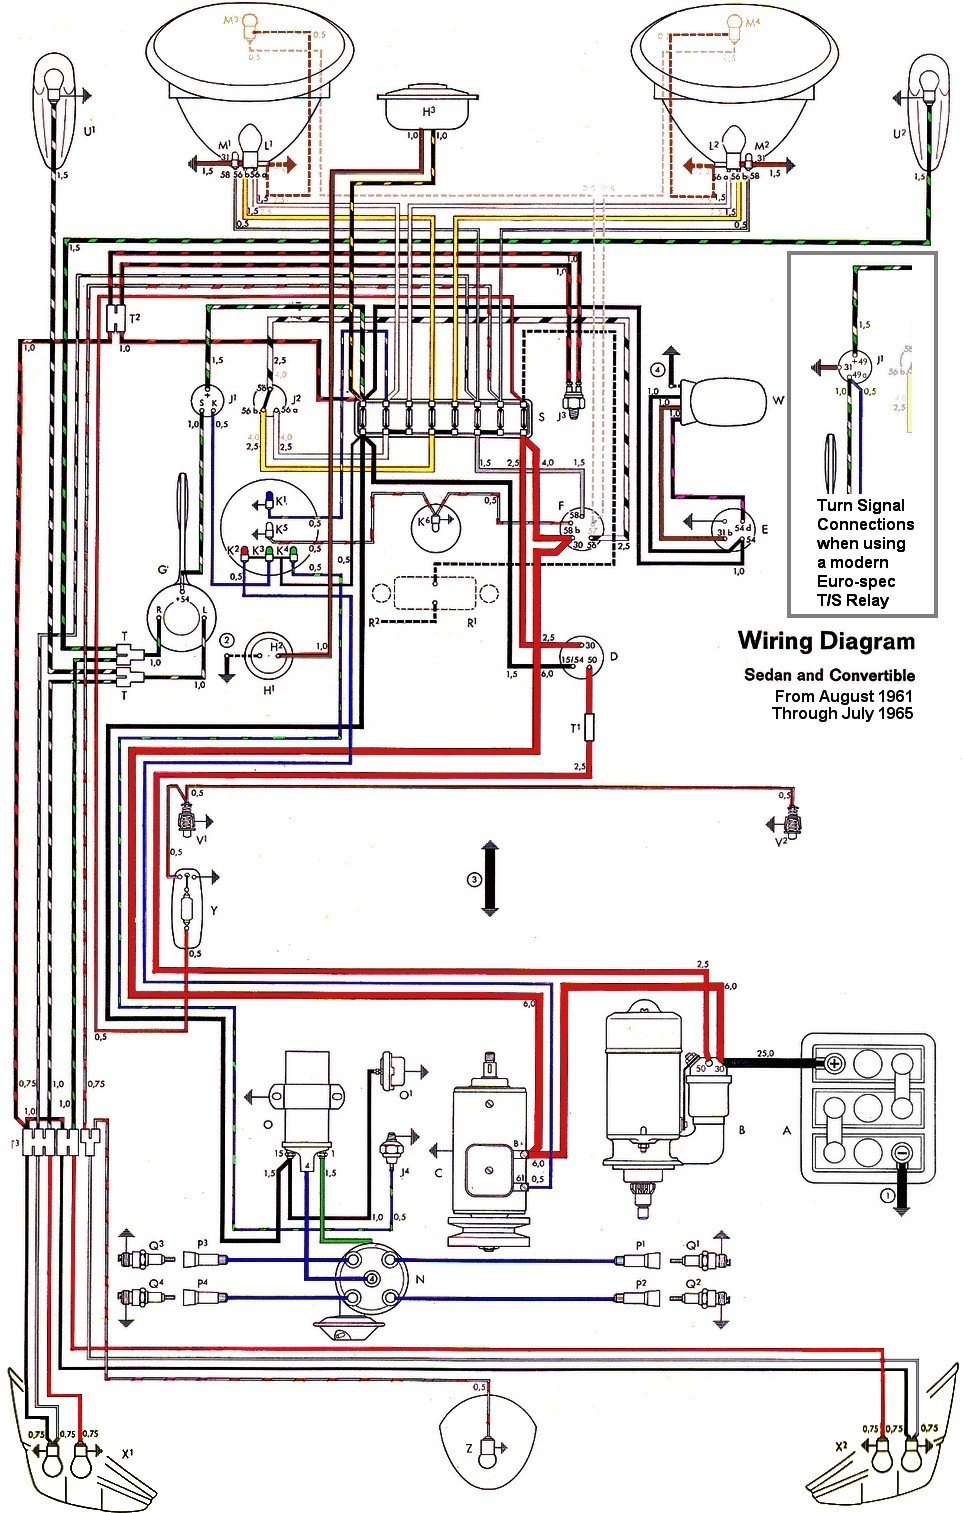 thesamba com type 1 wiring diagrams rh thesamba com 1971 vw super beetle wiring diagram 1972 vw beetle wiring diagram